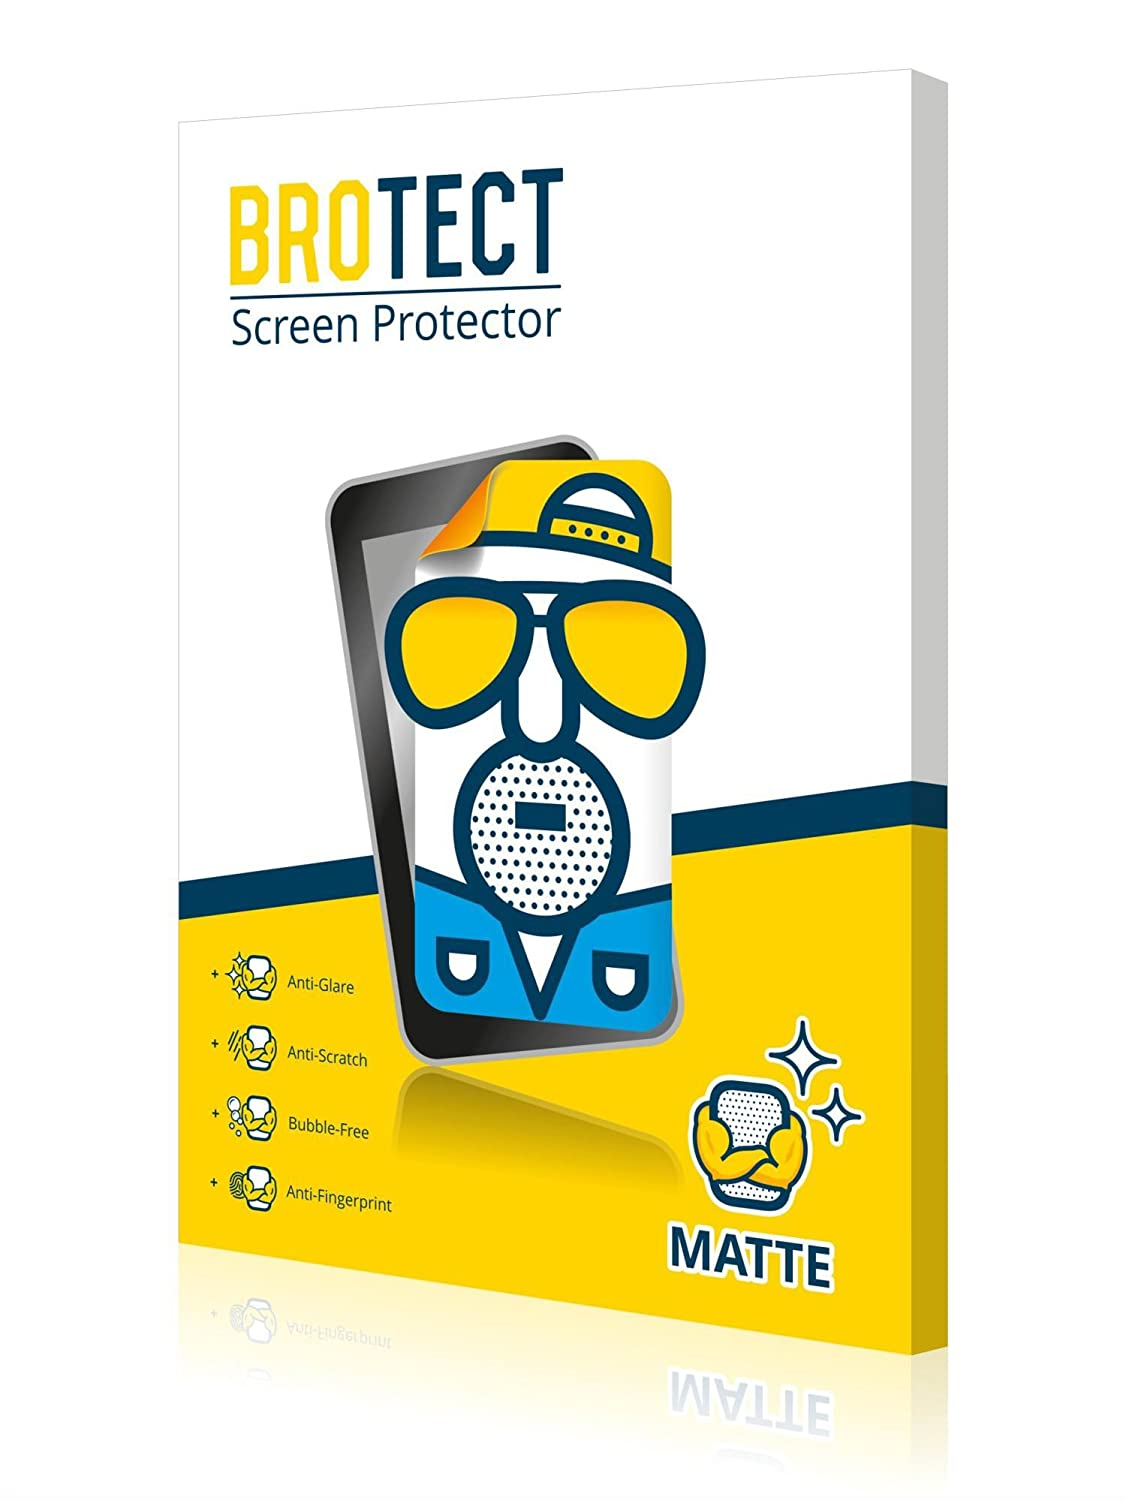 2x BROTECT Matte Screen Protector for Leica D-LUX 6, Matte, Anti-Glare, Anti-Scratch